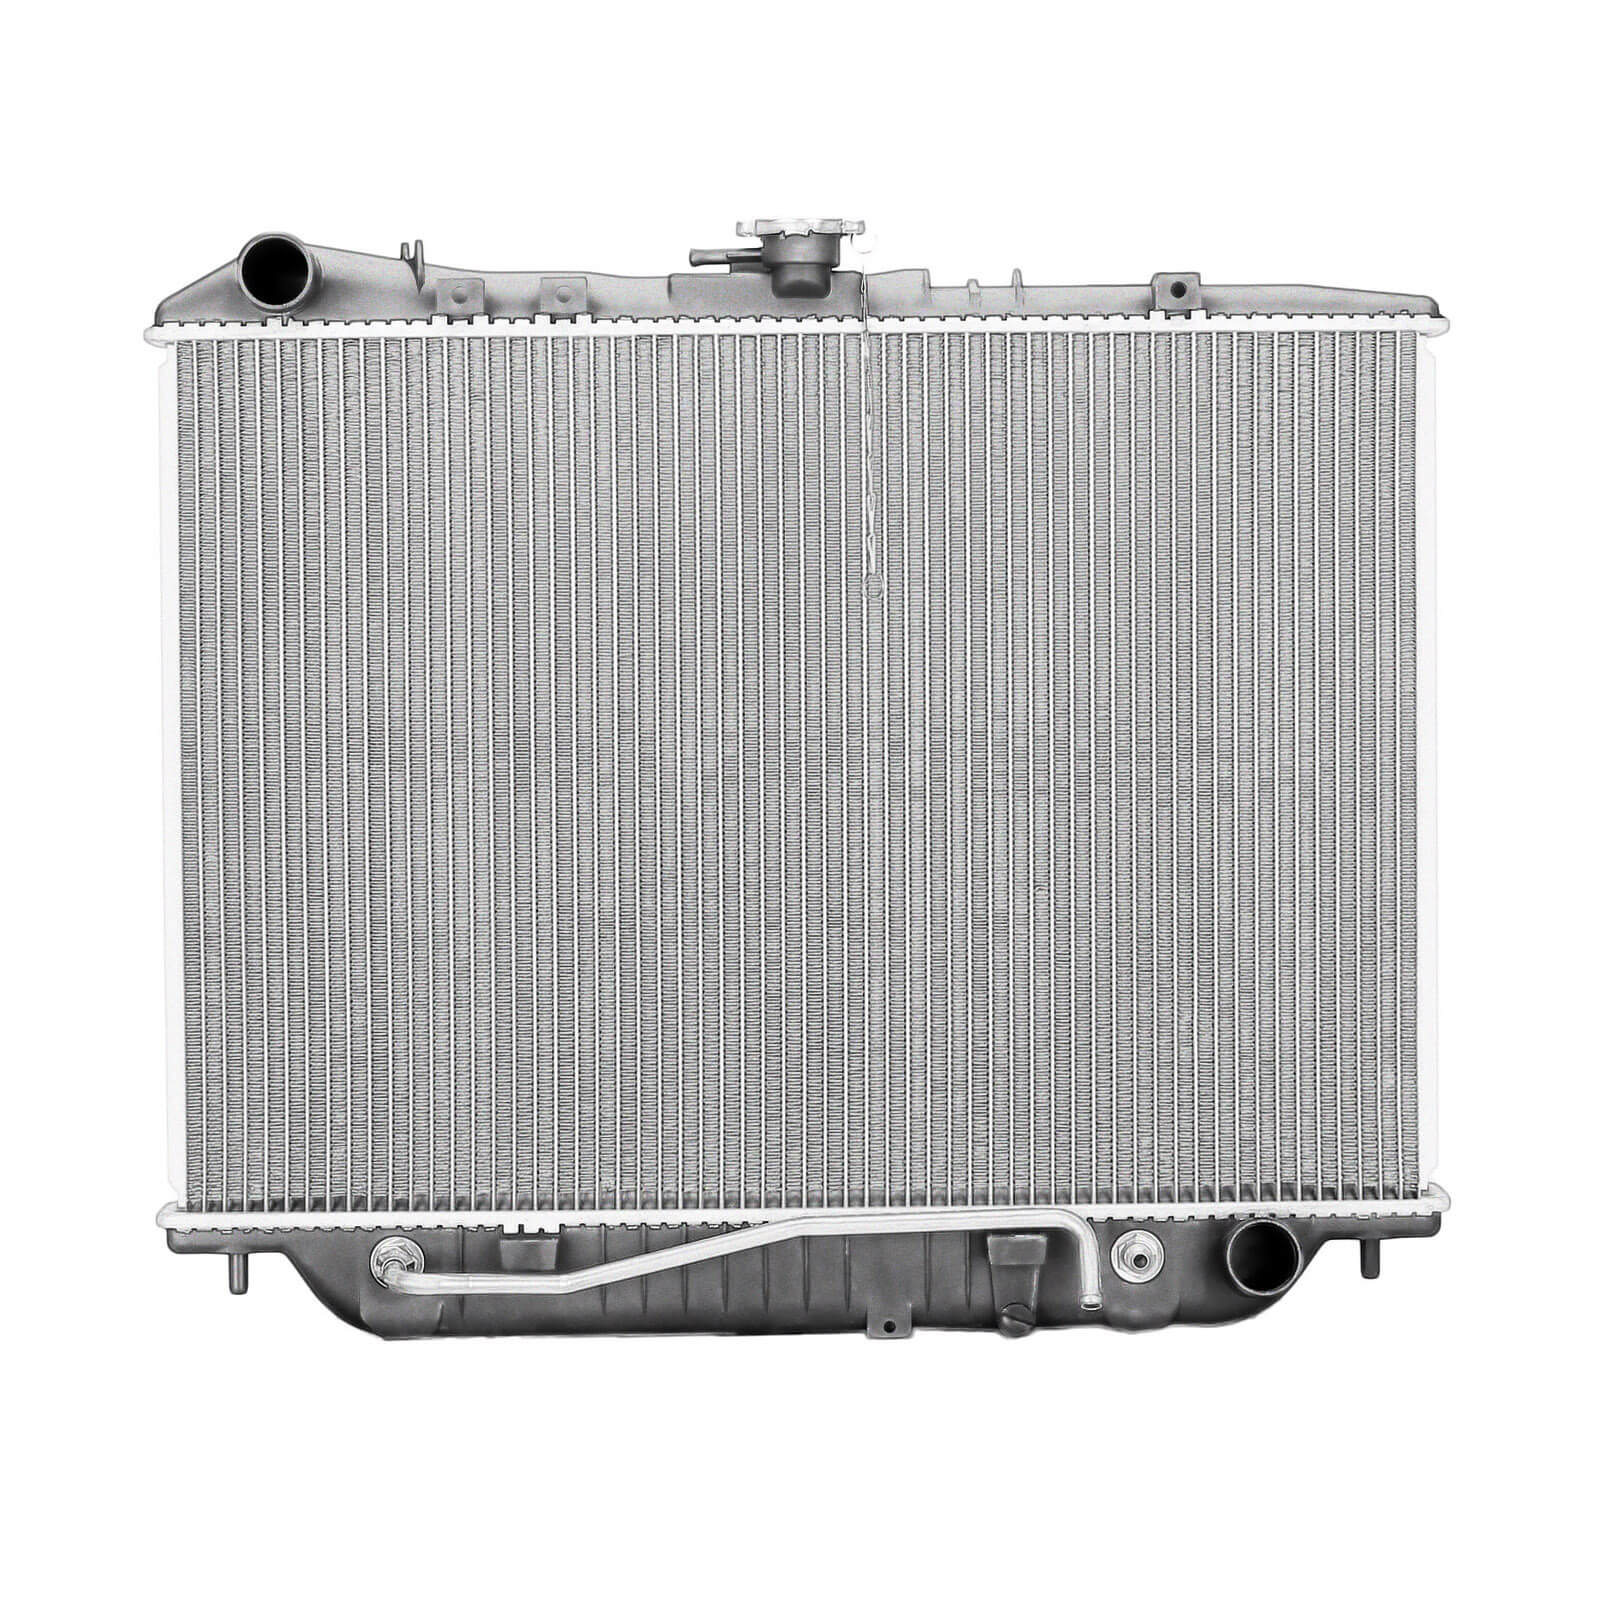 Dromedary-High Quality New 2688 Full Aluminum Radiator For Lexus Rx 330 33-202-v6-5